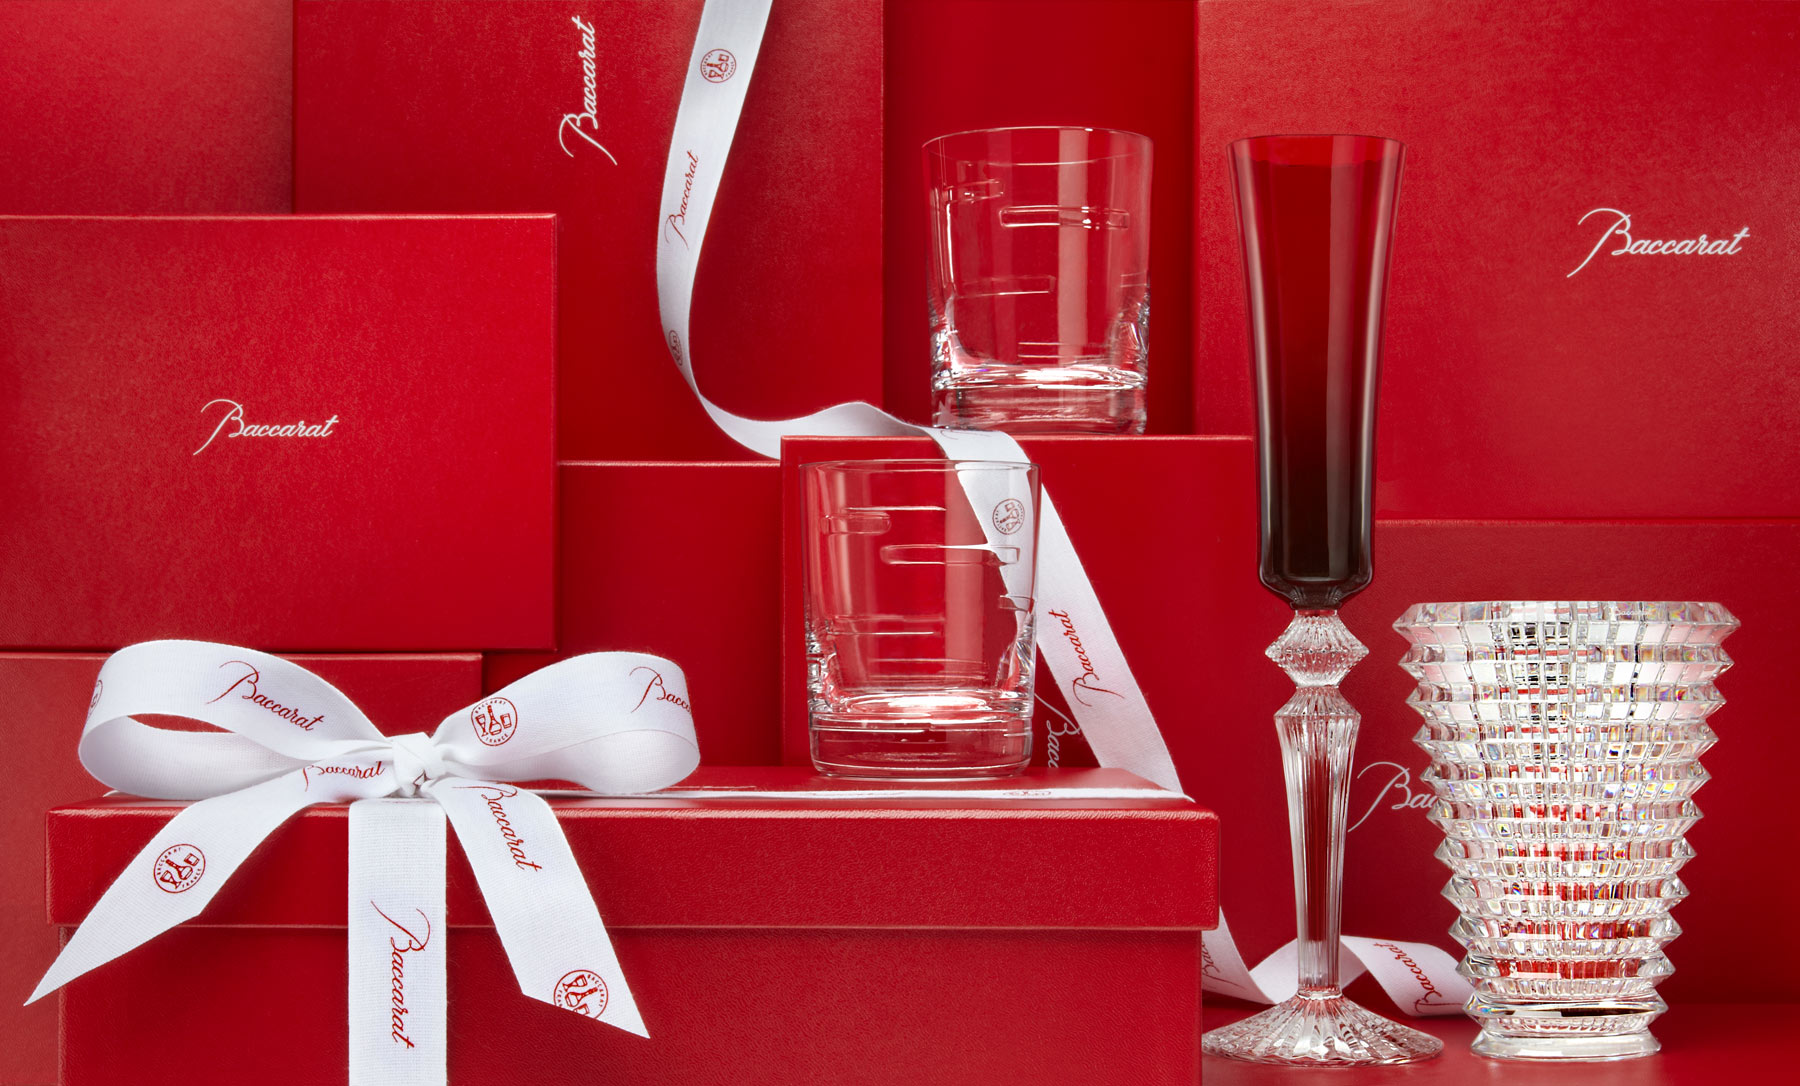 Baccarat-Gift-Red_web.jpg